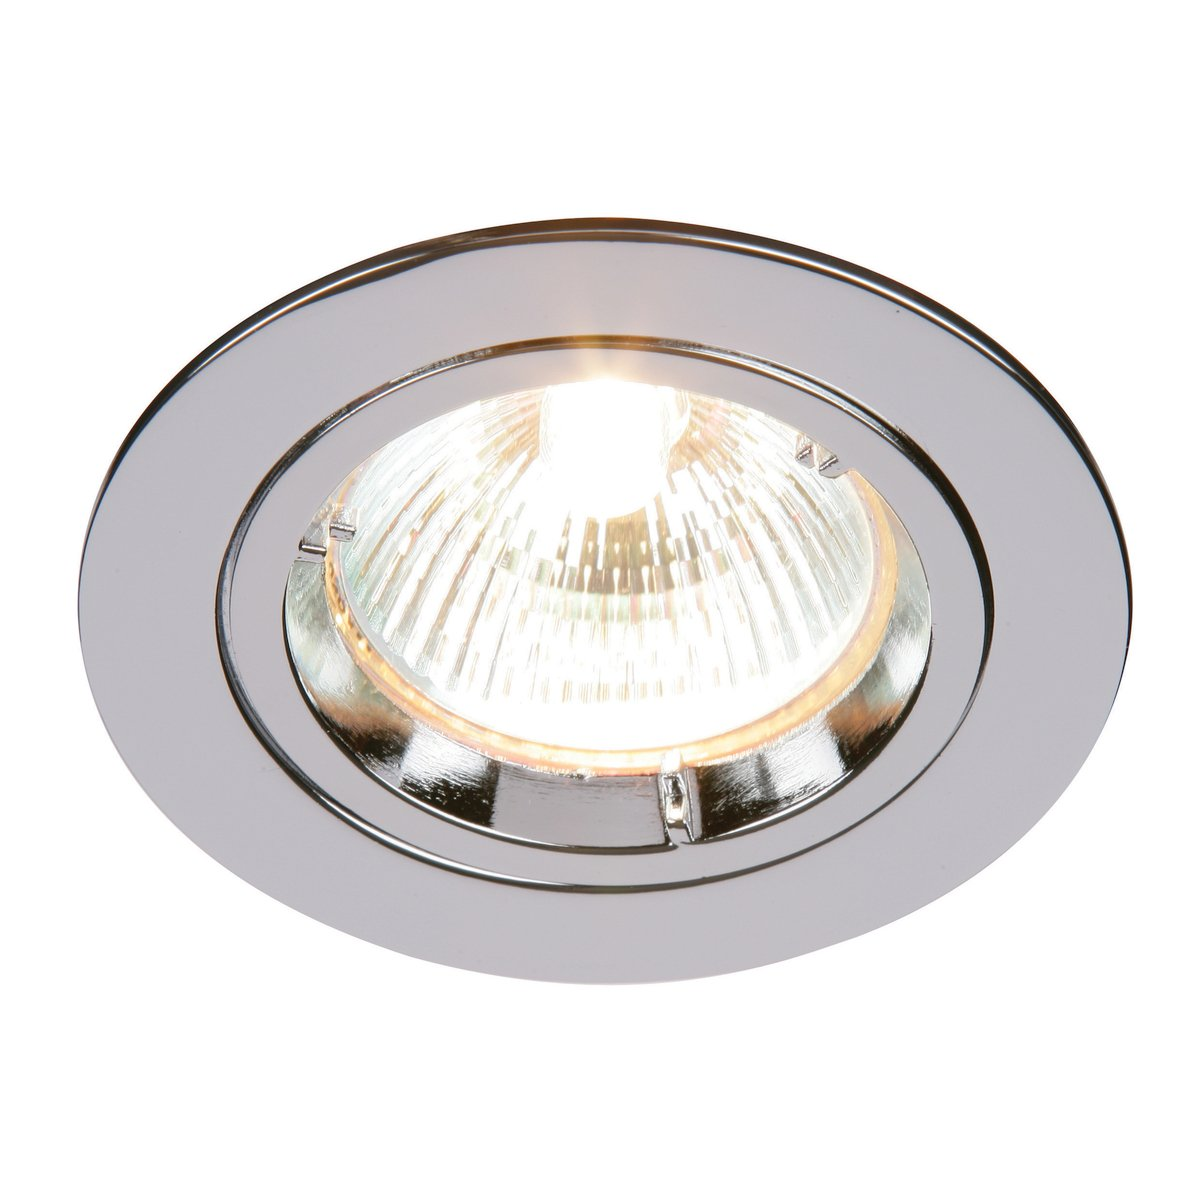 Fixed Recessed Spotlight Ceiling Lighting Downlight Mains 240V GU10 Fitting for Halogen or LED Lights Lamps Bulbs Satin Nickel Finish for Living Room Bedroom Kitchen IP20 Rated